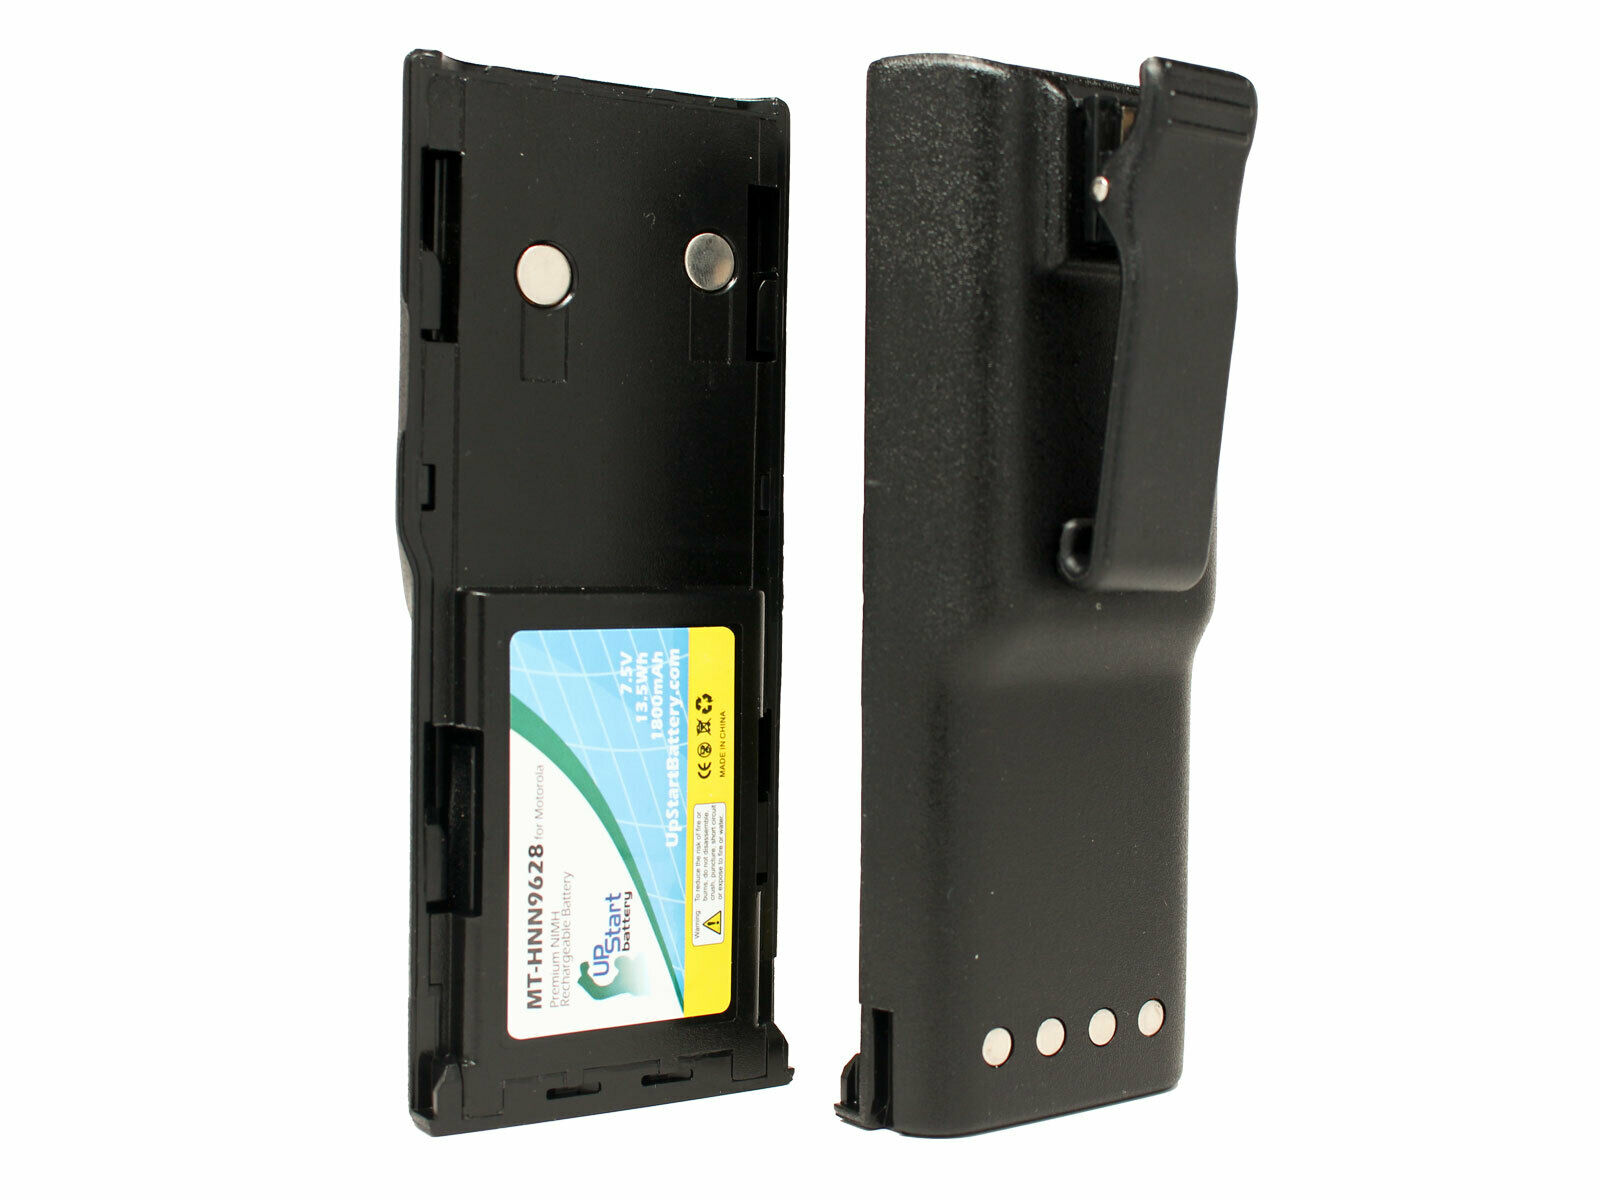 2x Two-Way Radio Battery for Motorola Radius GP300 P080 GP88S HNN9628B HNN9701A. Available Now for 41.99